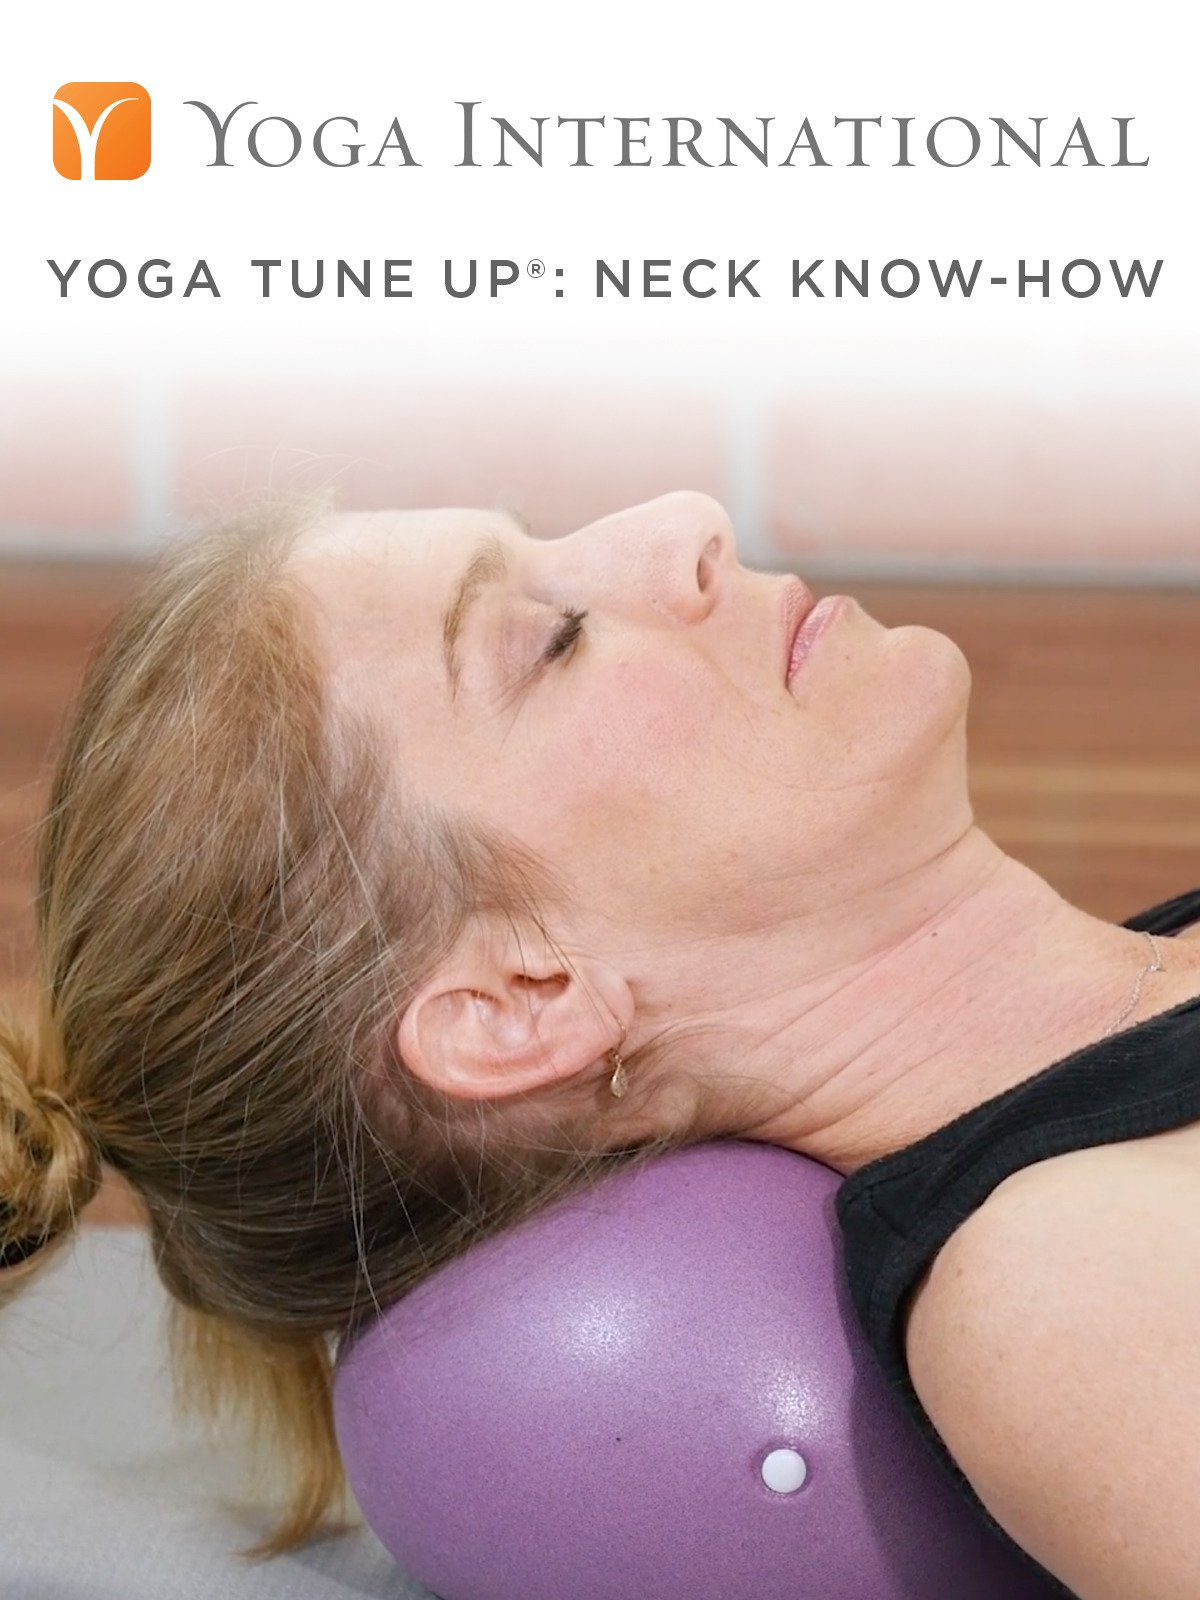 Yoga Tune Up®: Neck Know-How